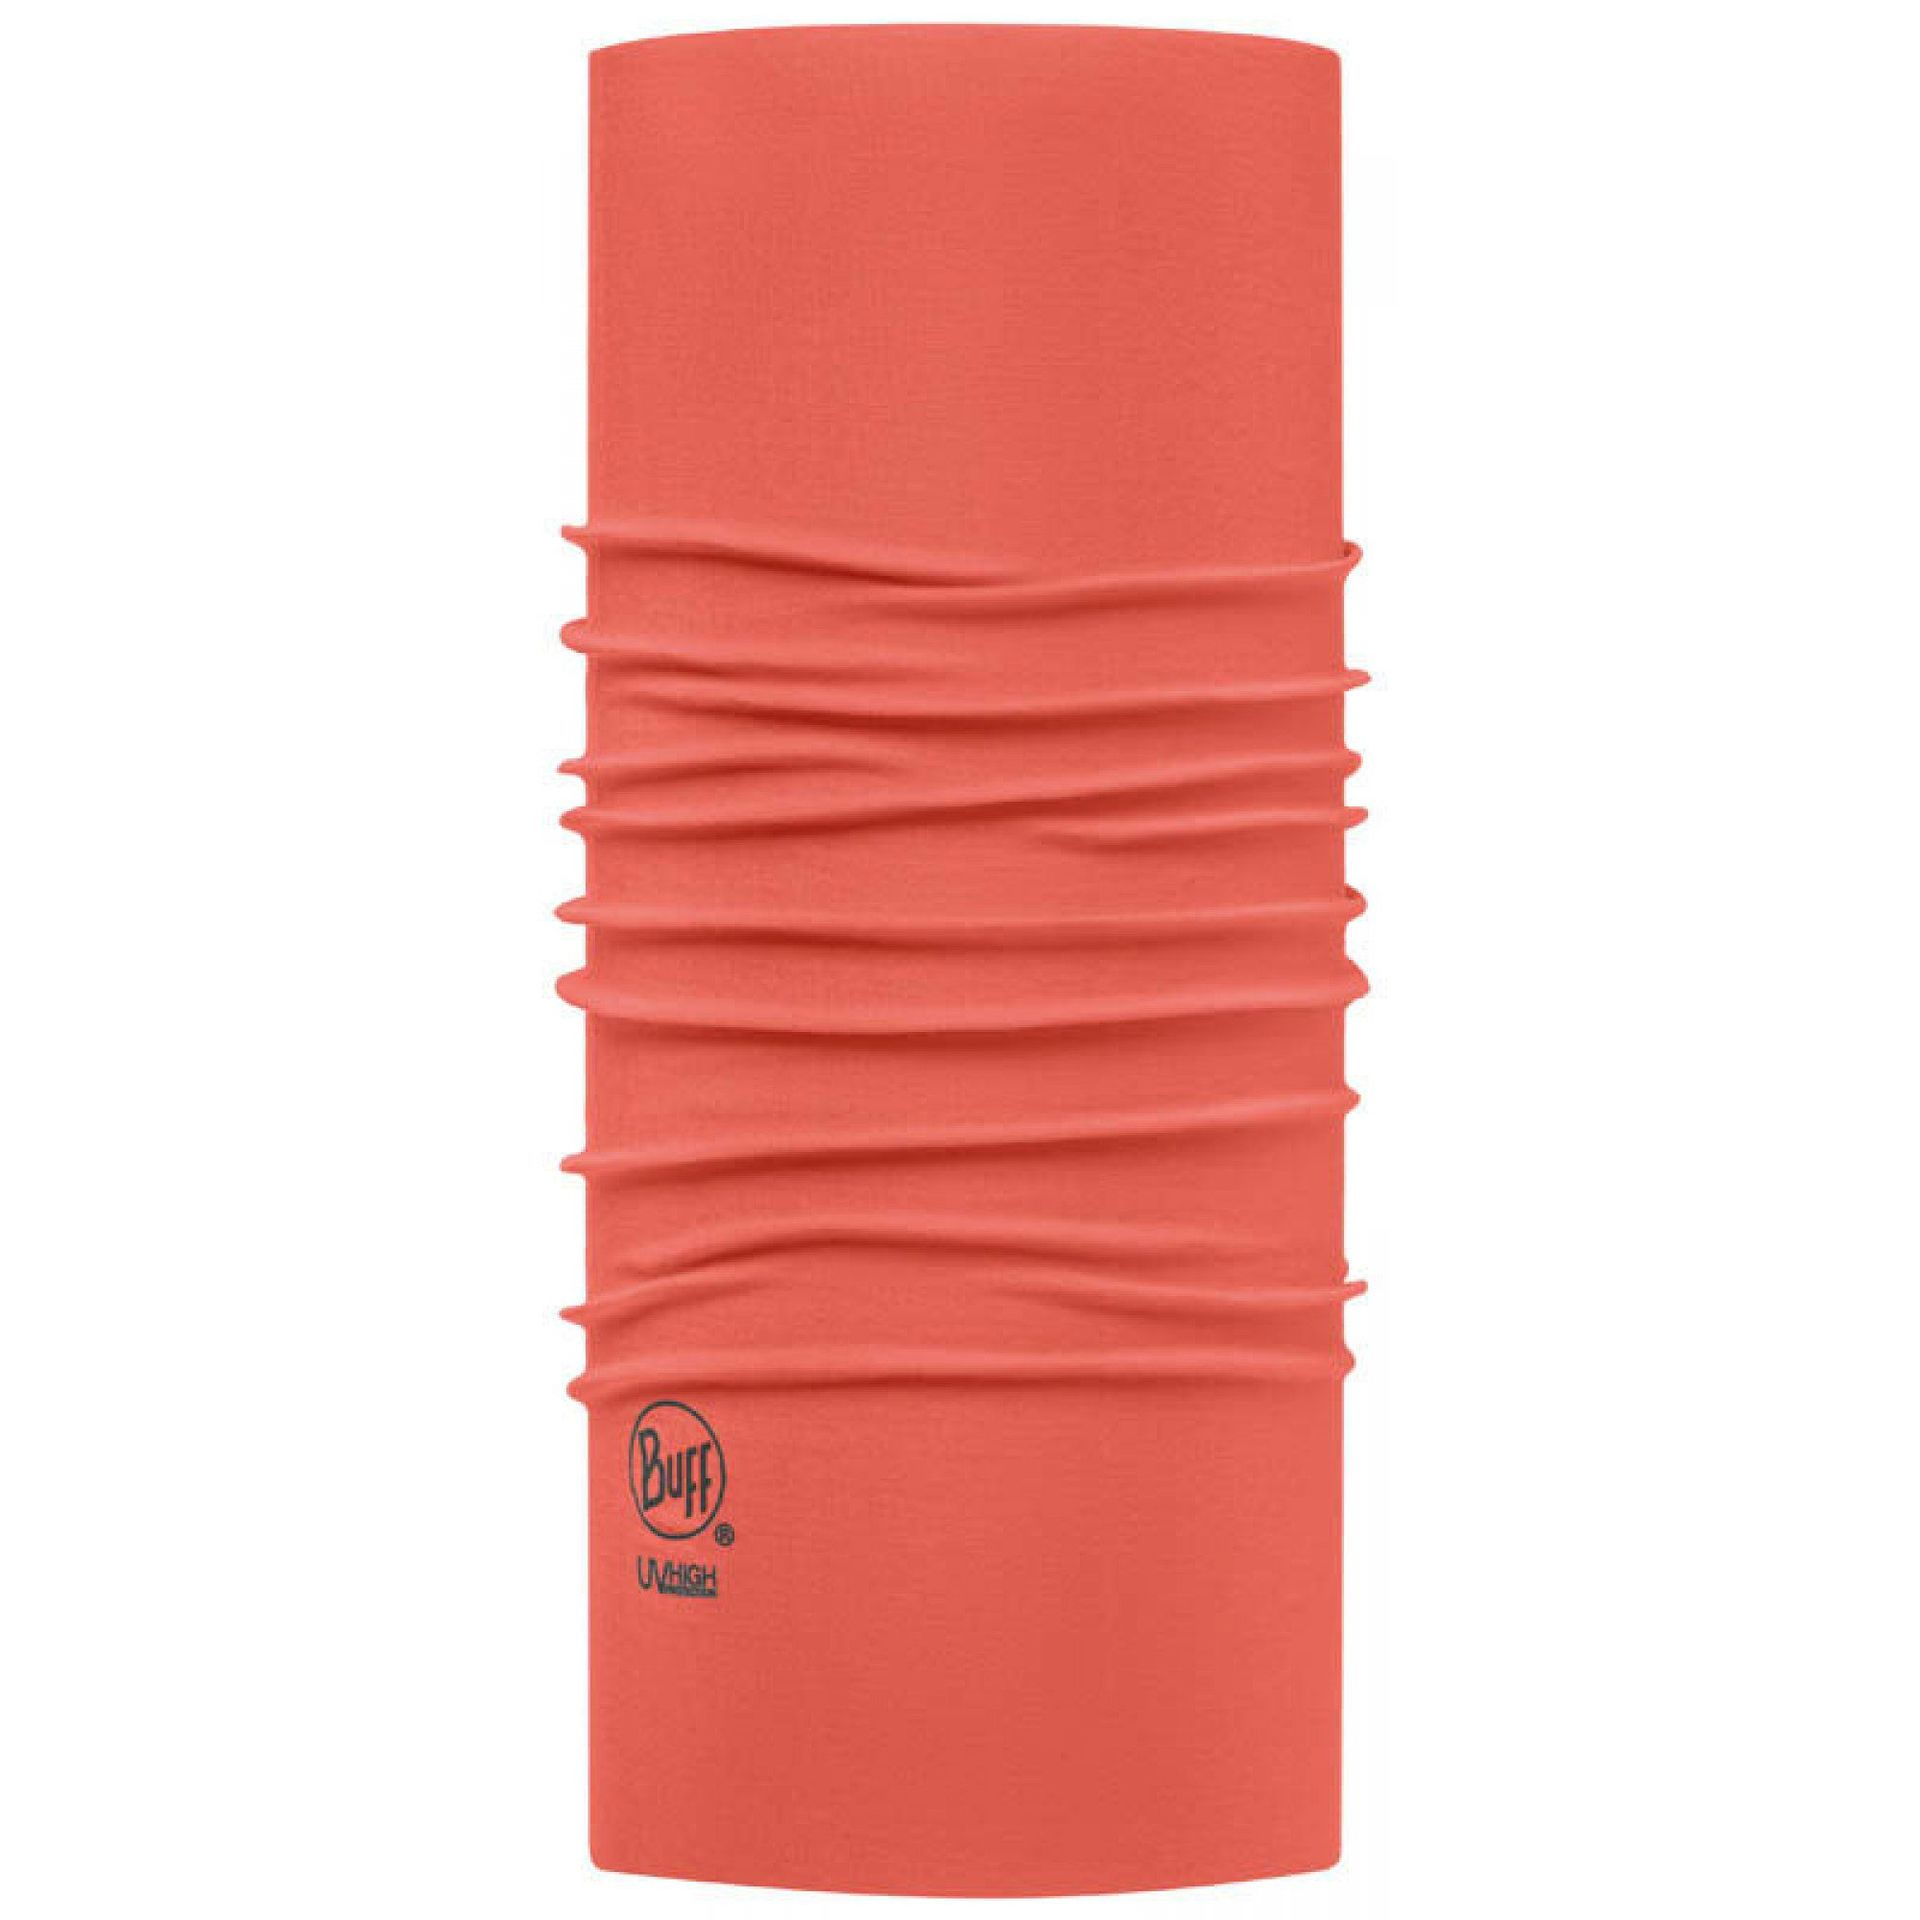 CHUSTA BUFF HIGH UV PROTECTION SOLID GERANIUM ORANGE